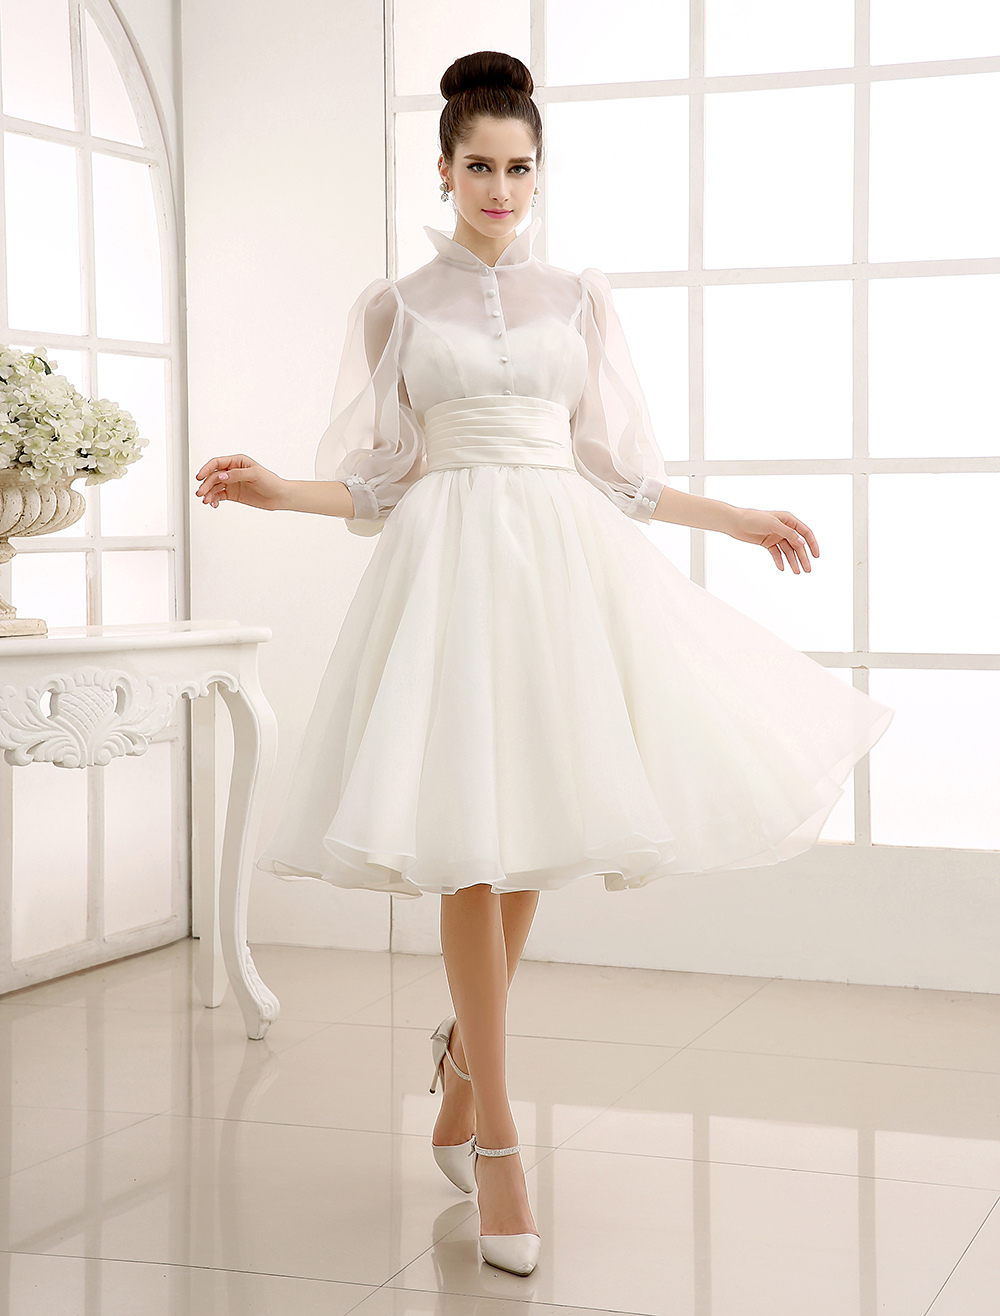 Ivory Vintage Wedding Gown with Jewel Neck Bow Detailing Milanoo ...